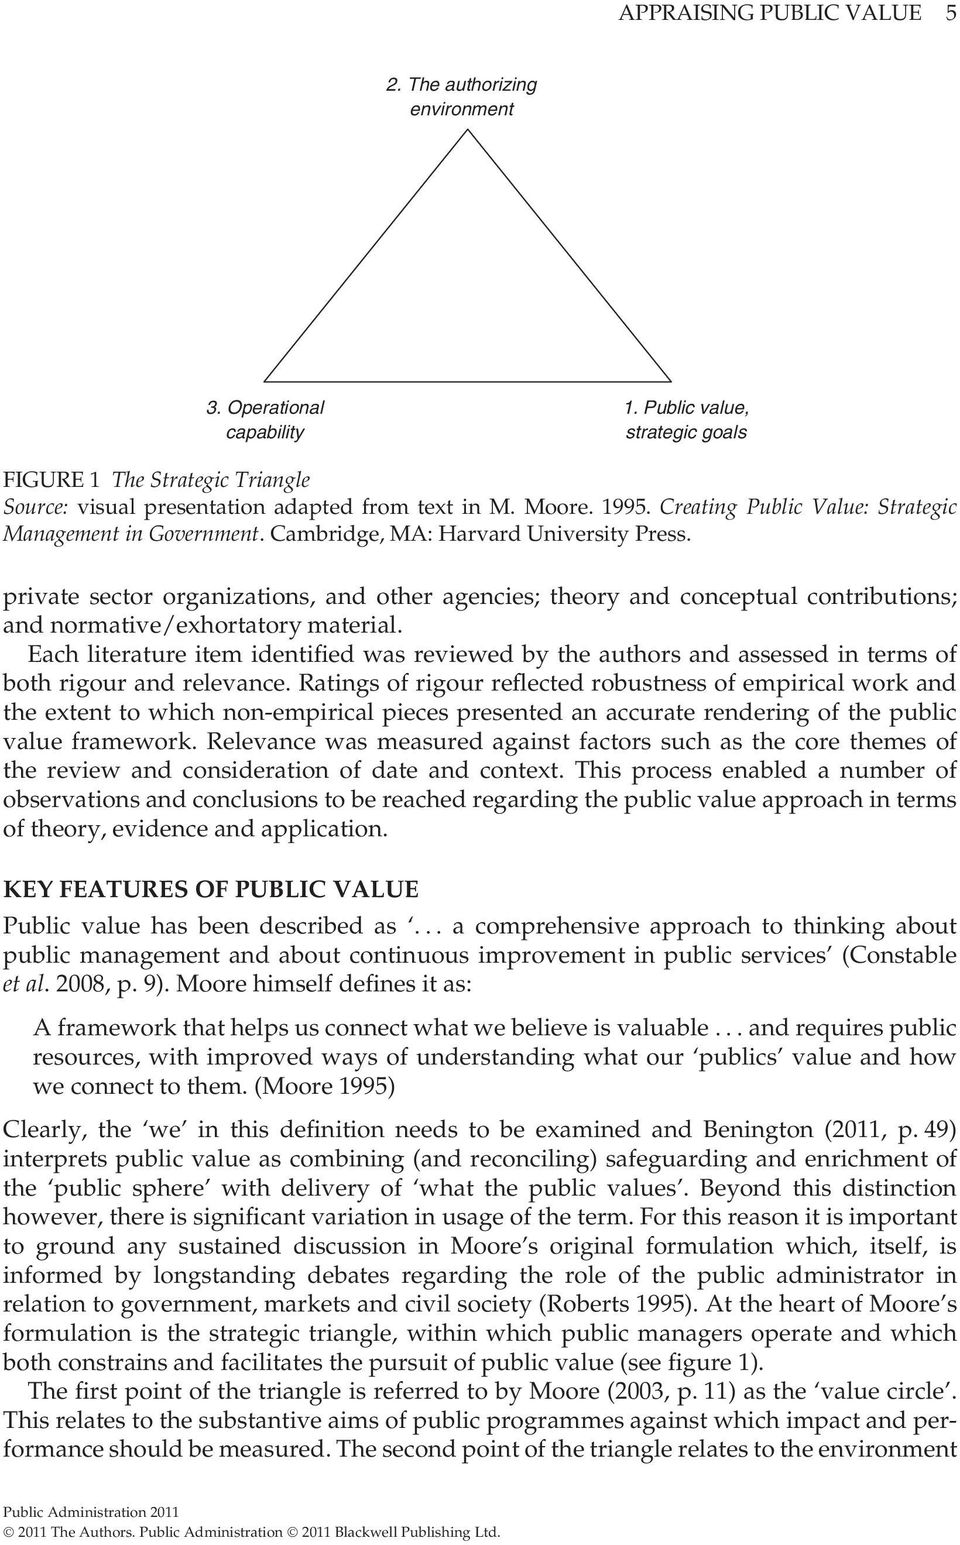 private sector organizations, and other agencies; theory and conceptual contributions; and normative/exhortatory material.